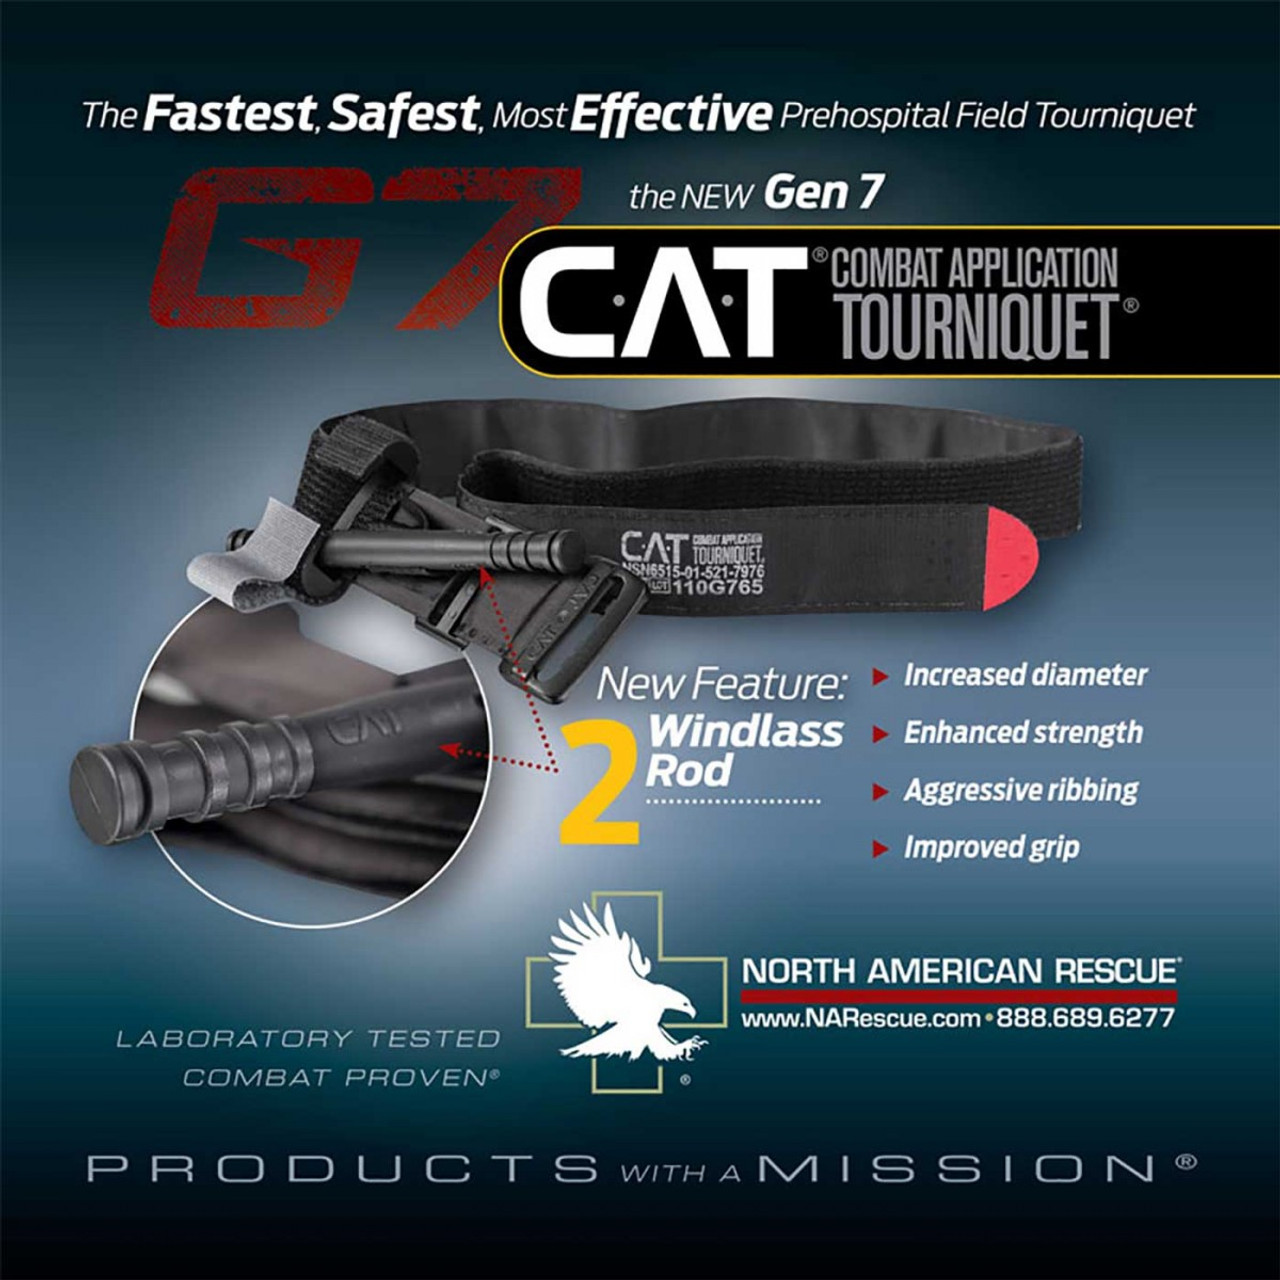 The Combat Application Tourniquet ® (C-A-T) GEN 7